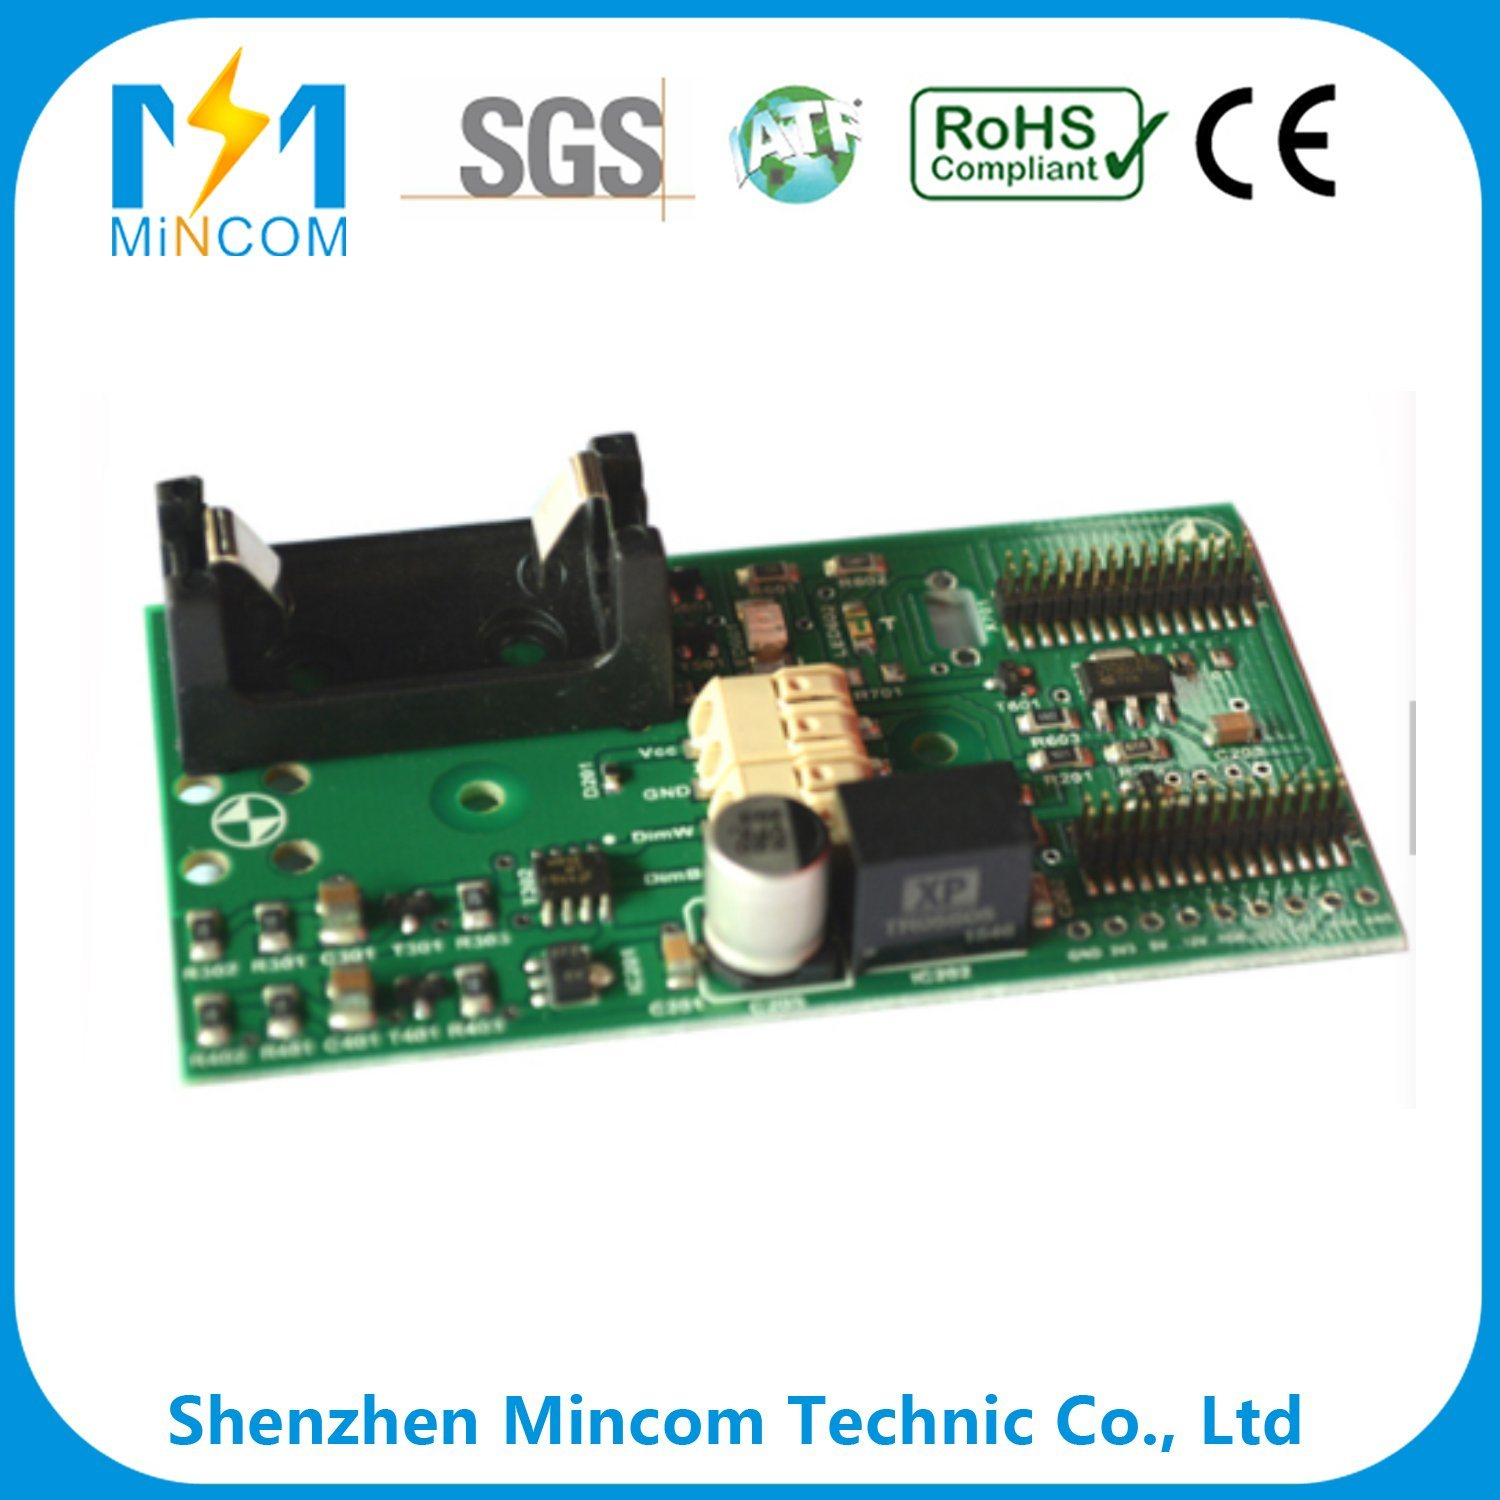 Wholesale Shenzhen Electronics Buy Reliable Ems Manufacture Printed Circuit Board Pcb Assembly Provide Best In Class Manufacturer